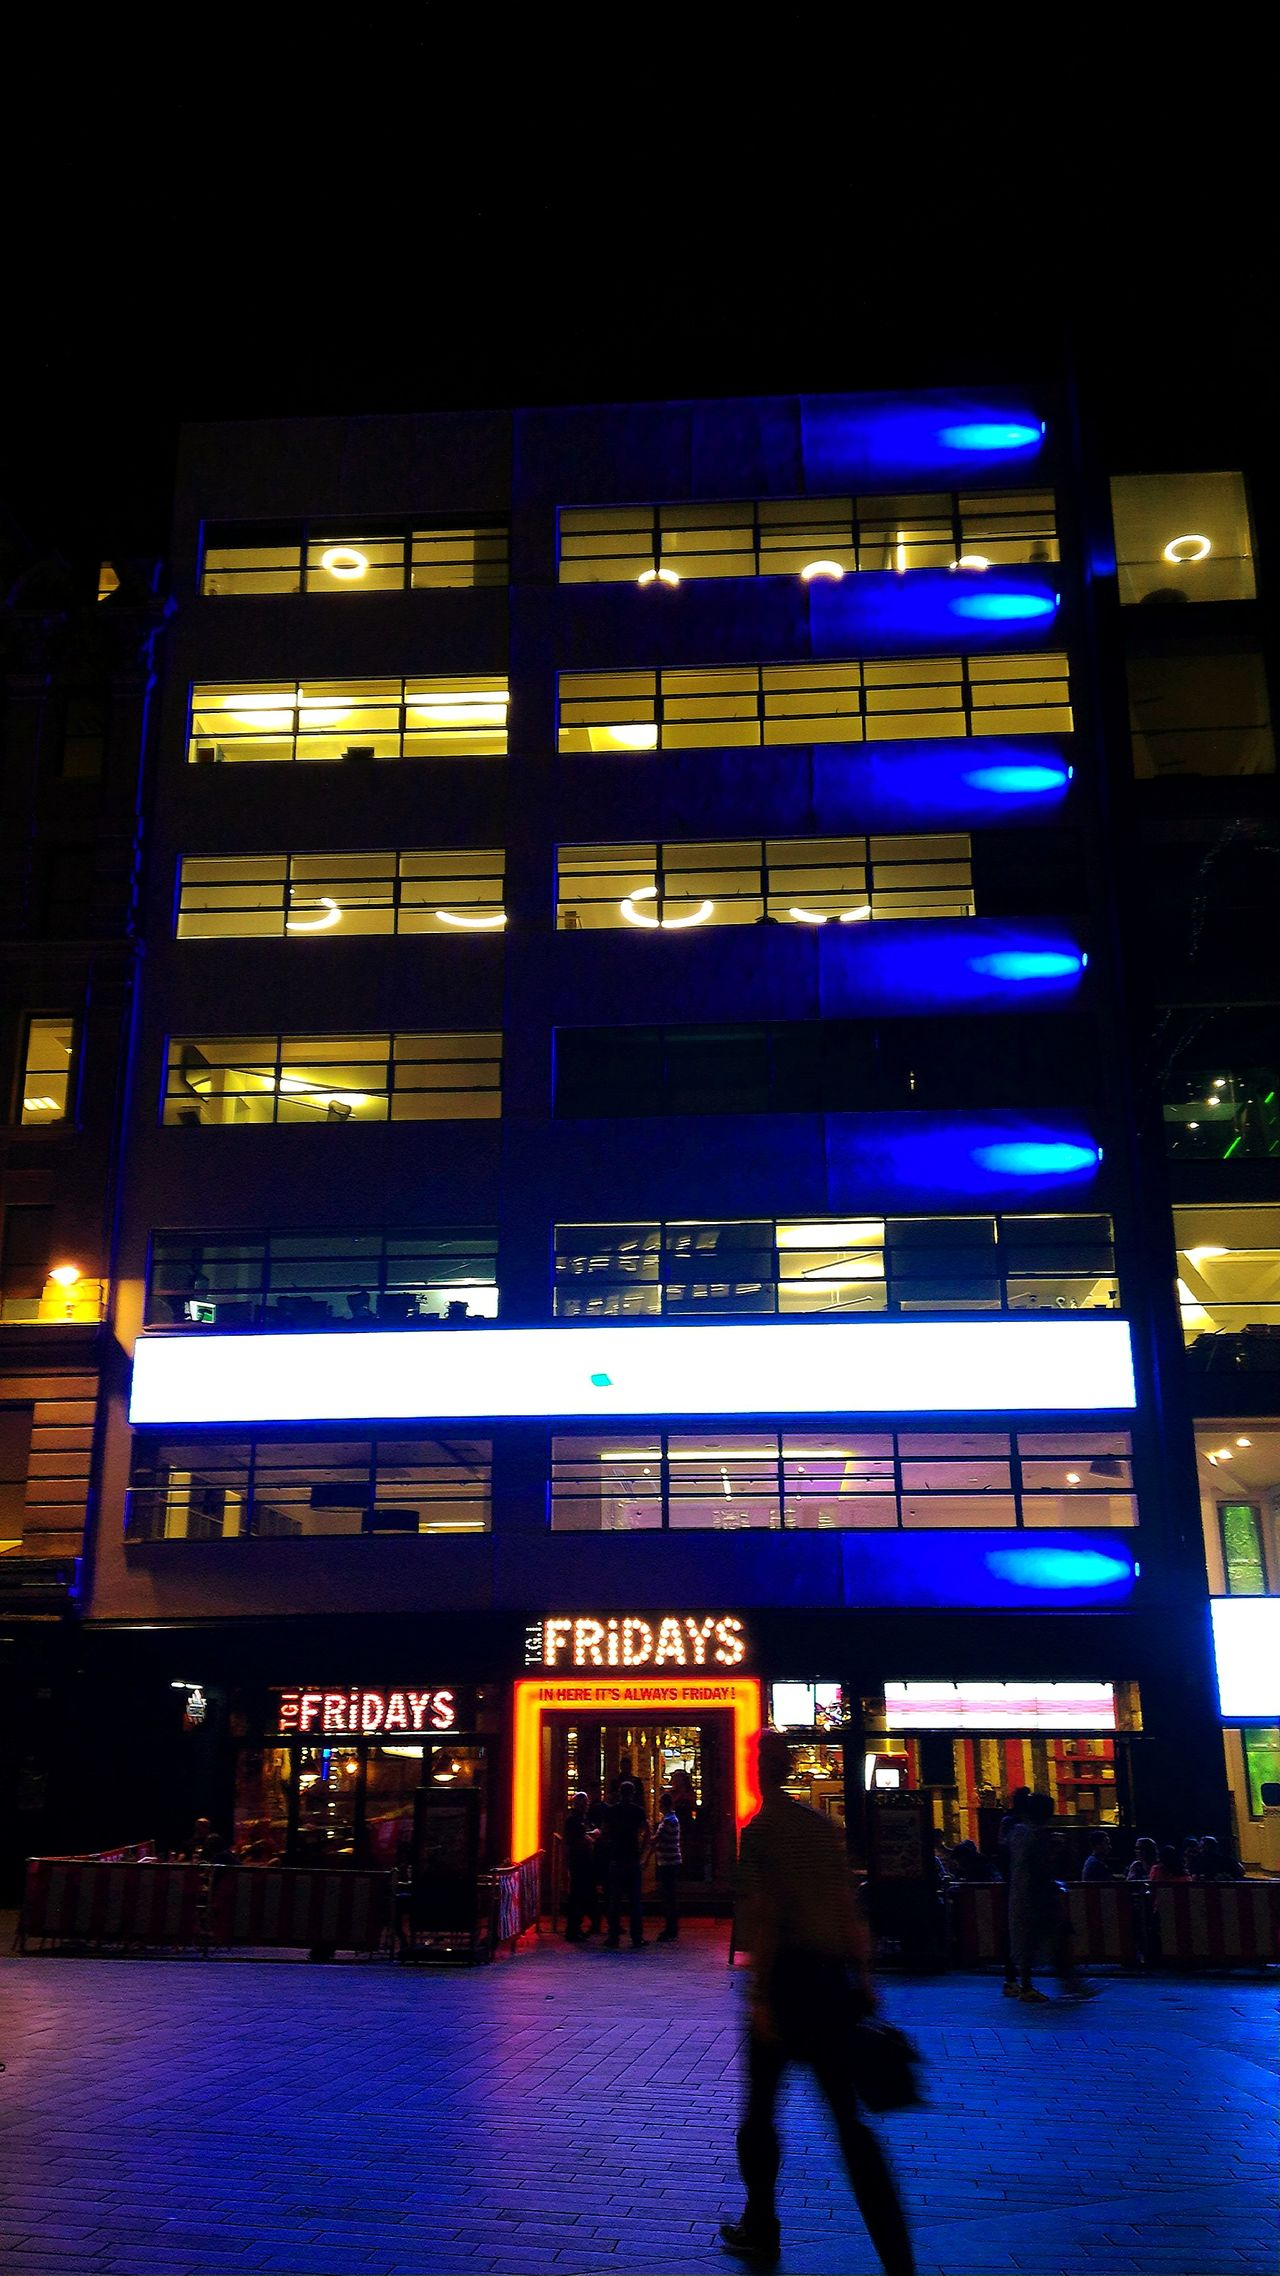 London Lifestyle London Night Panorama Nightlife Notte Eletricscolour Eletric Colori Elettrici